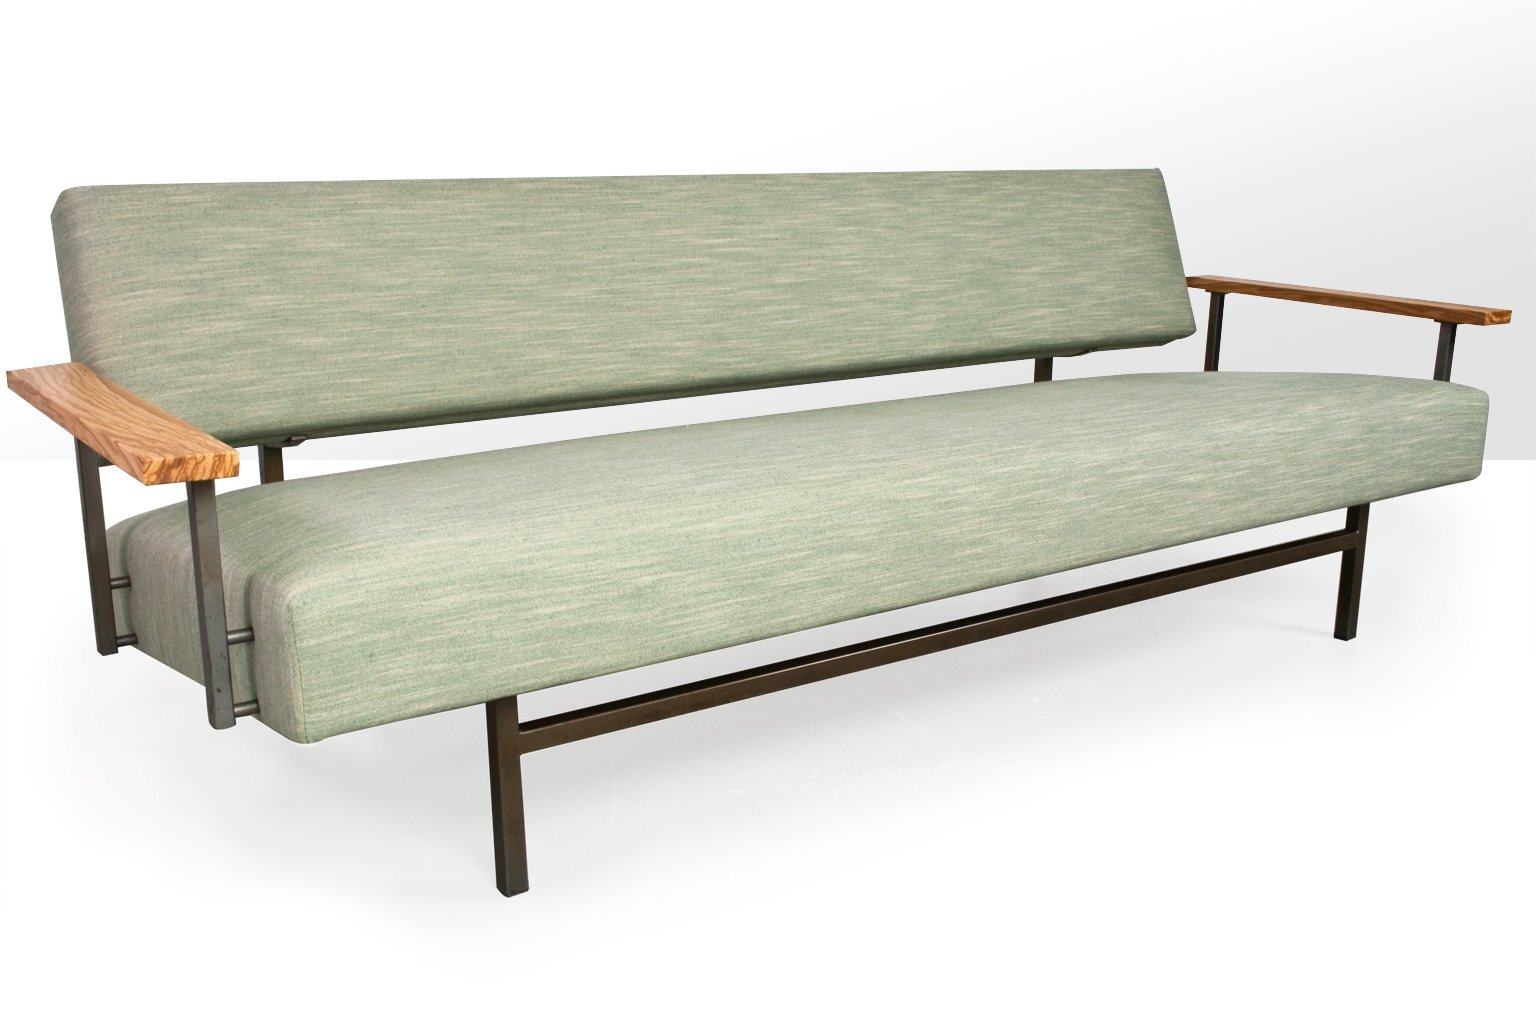 Rob Parry Sofa In Linnen Fabric Metal Frame Olive Floating Armrests 1960s